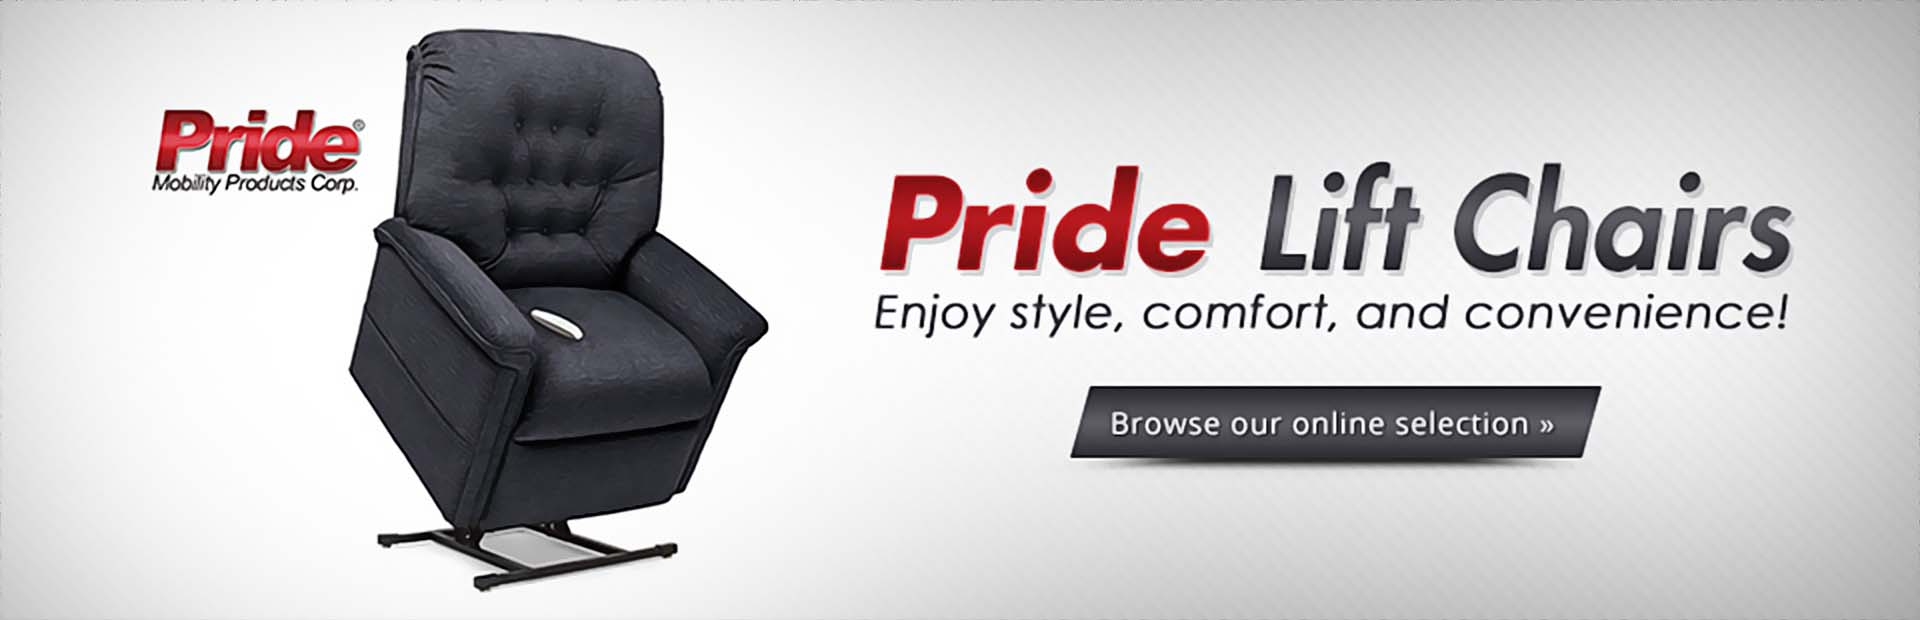 Pride lift chairs allow you to enjoy style, comfort, and convenience! Click here to browse our onlin